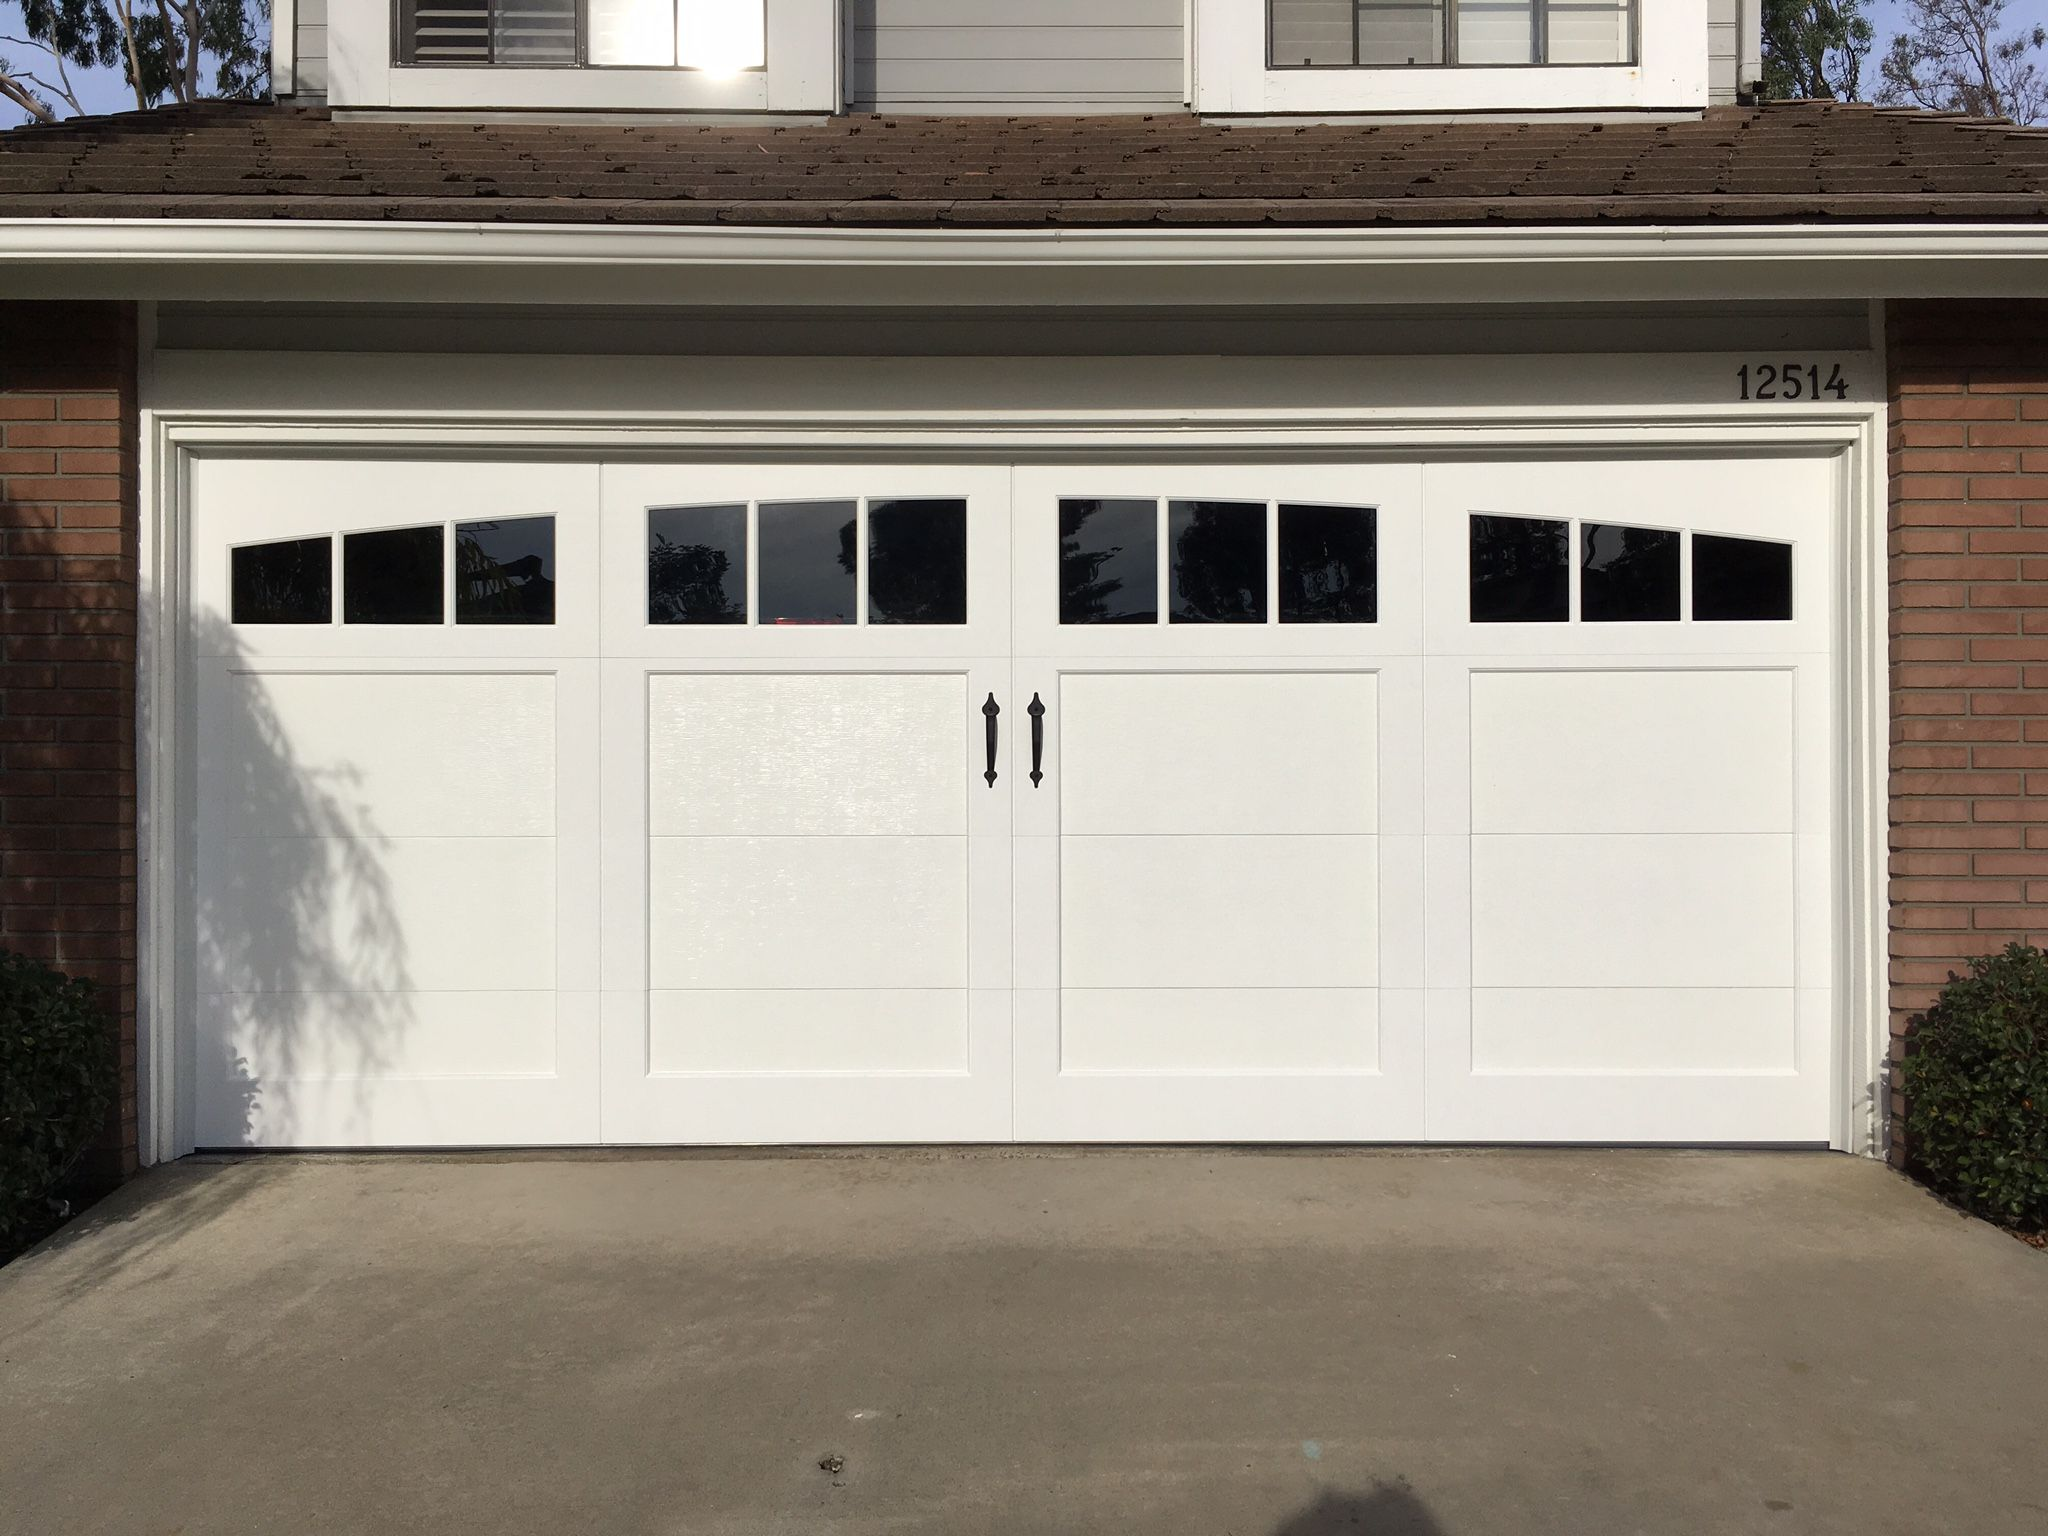 Brand New Northwest Therma Elite Garage Door Installed In San Diego, CA. If  Your Looking To Install A New Garage Door In The San Diego County Area Call  ...